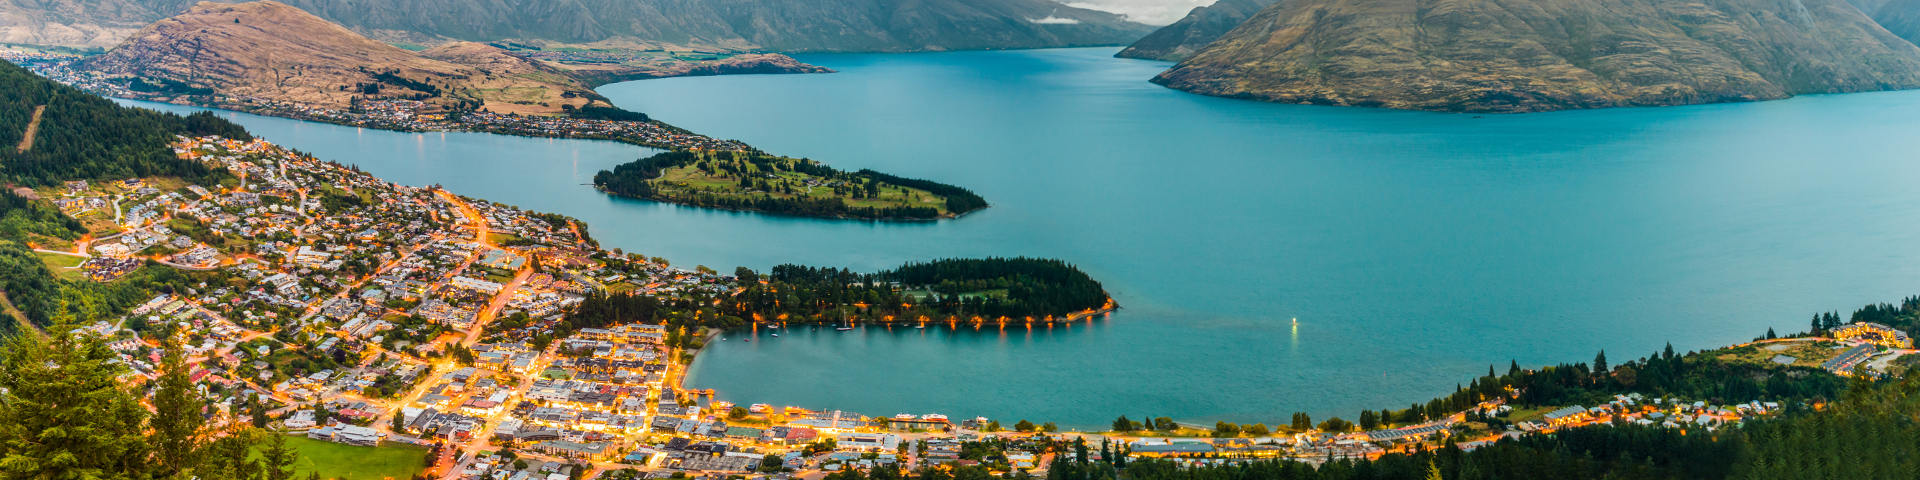 Queenstown hero 1